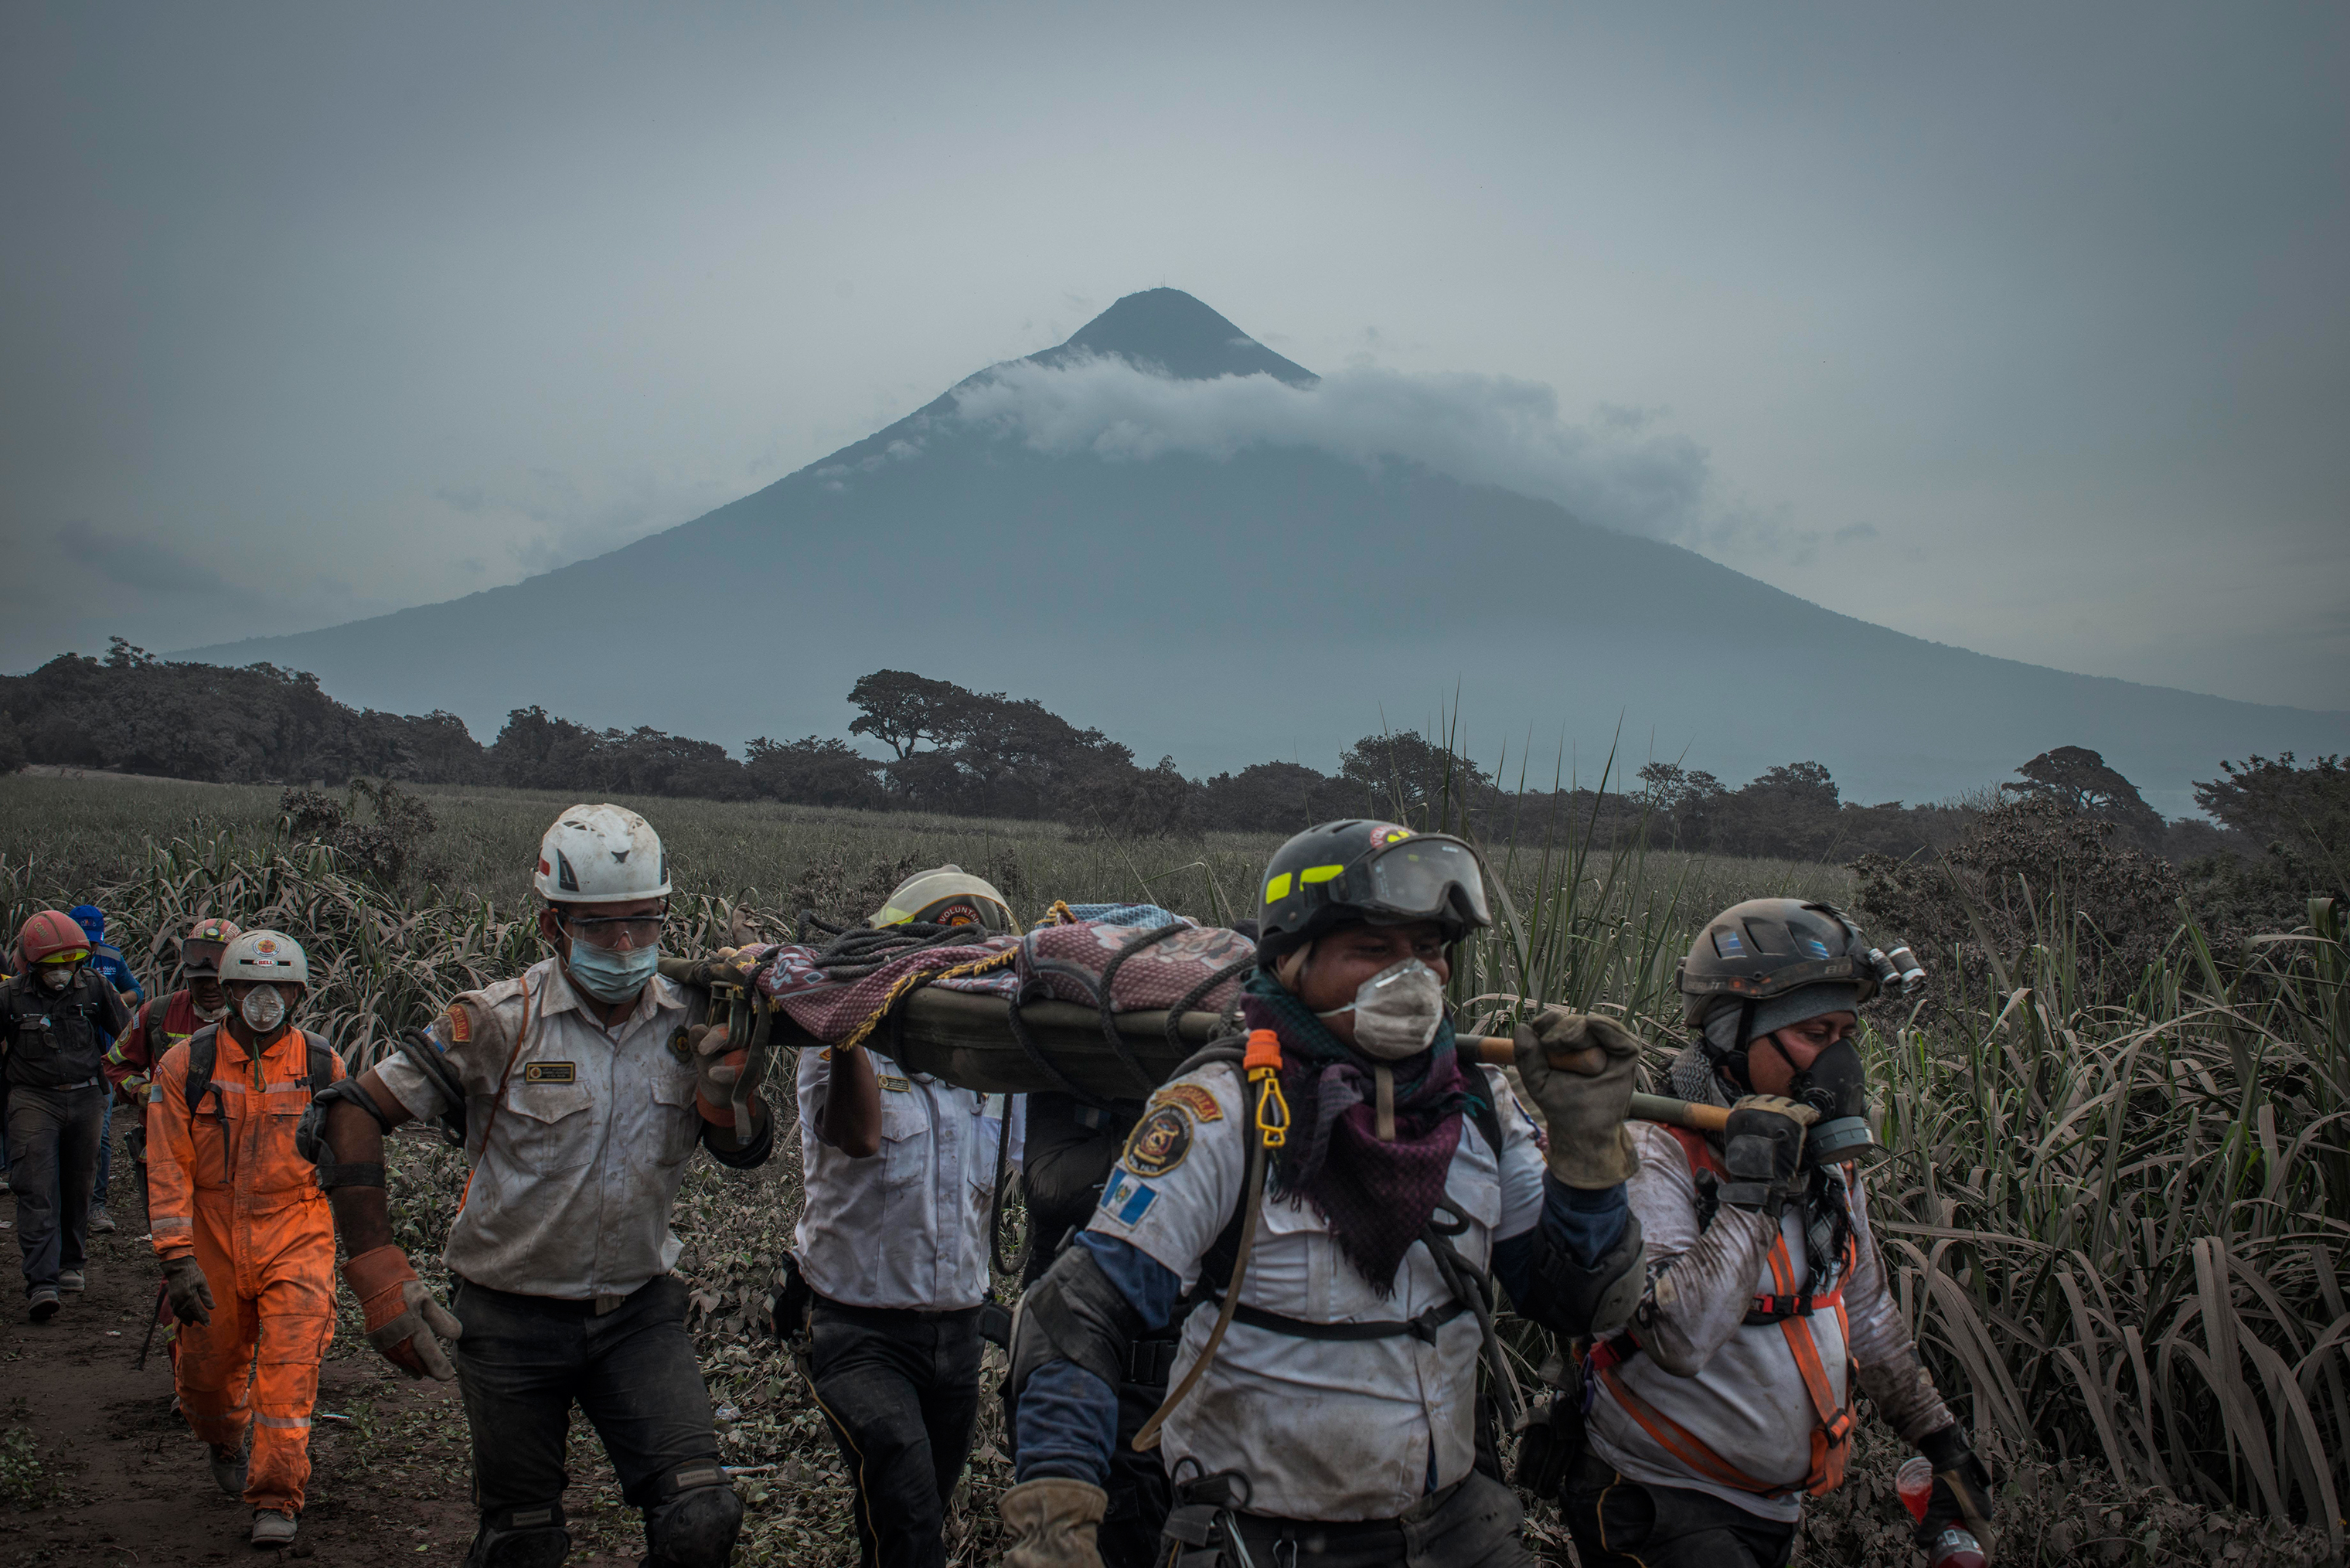 Rescuers carry a body in San Miguel Los Lotes on June 4. In the background is the Volcán de Agua, which has no history of eruptions.